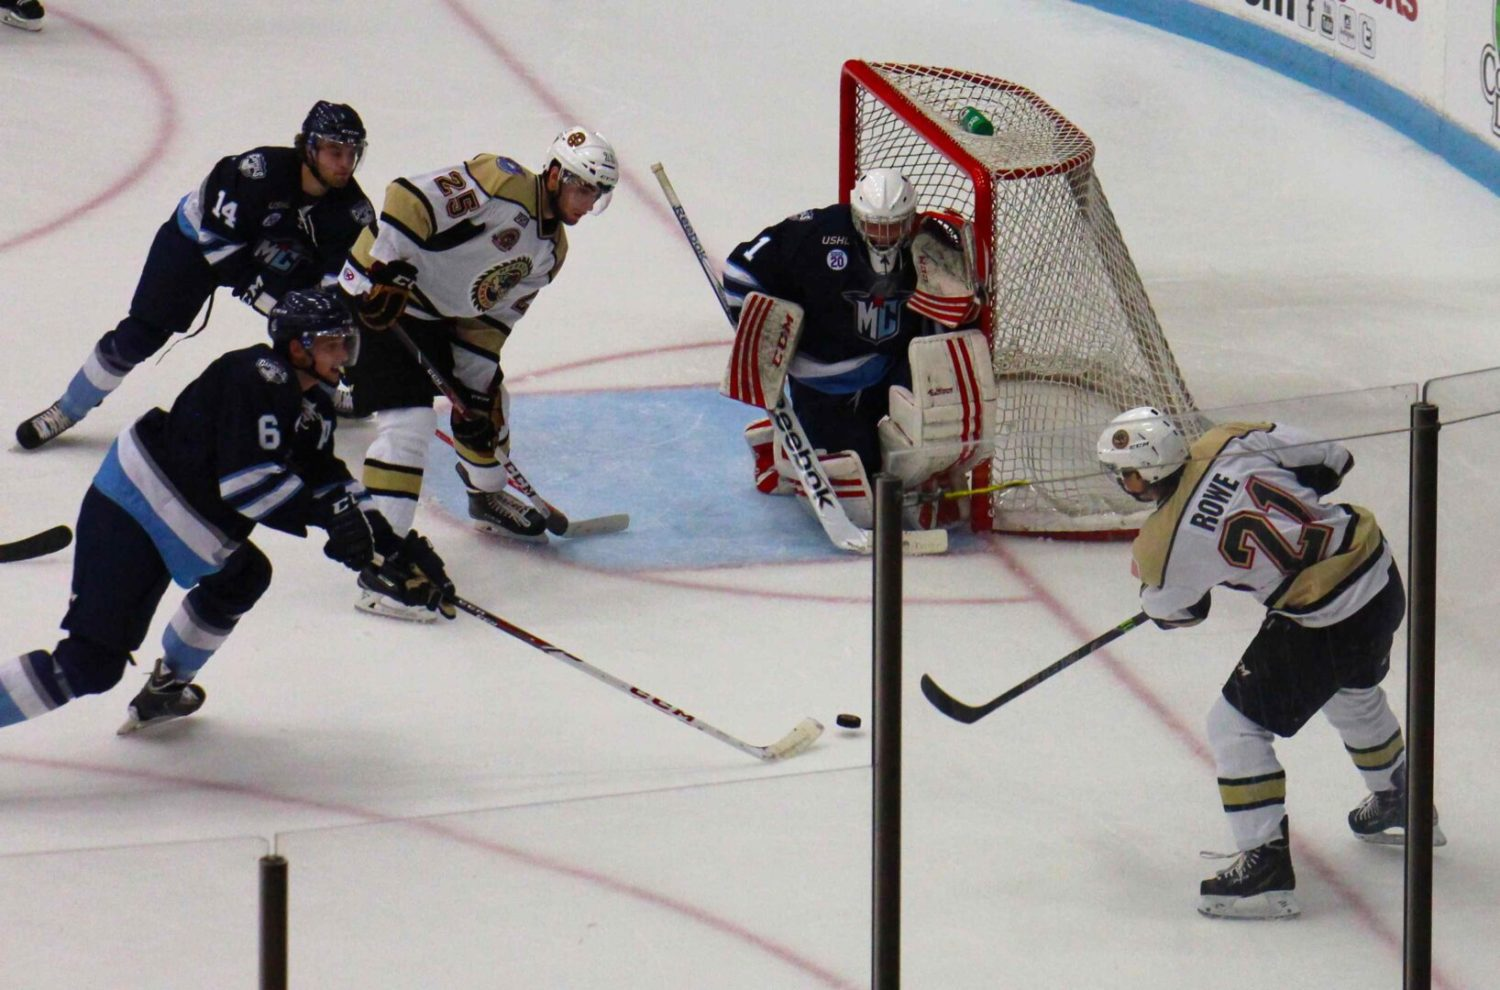 Lumberjacks survive late Madison rally to win their home opener, 4-3